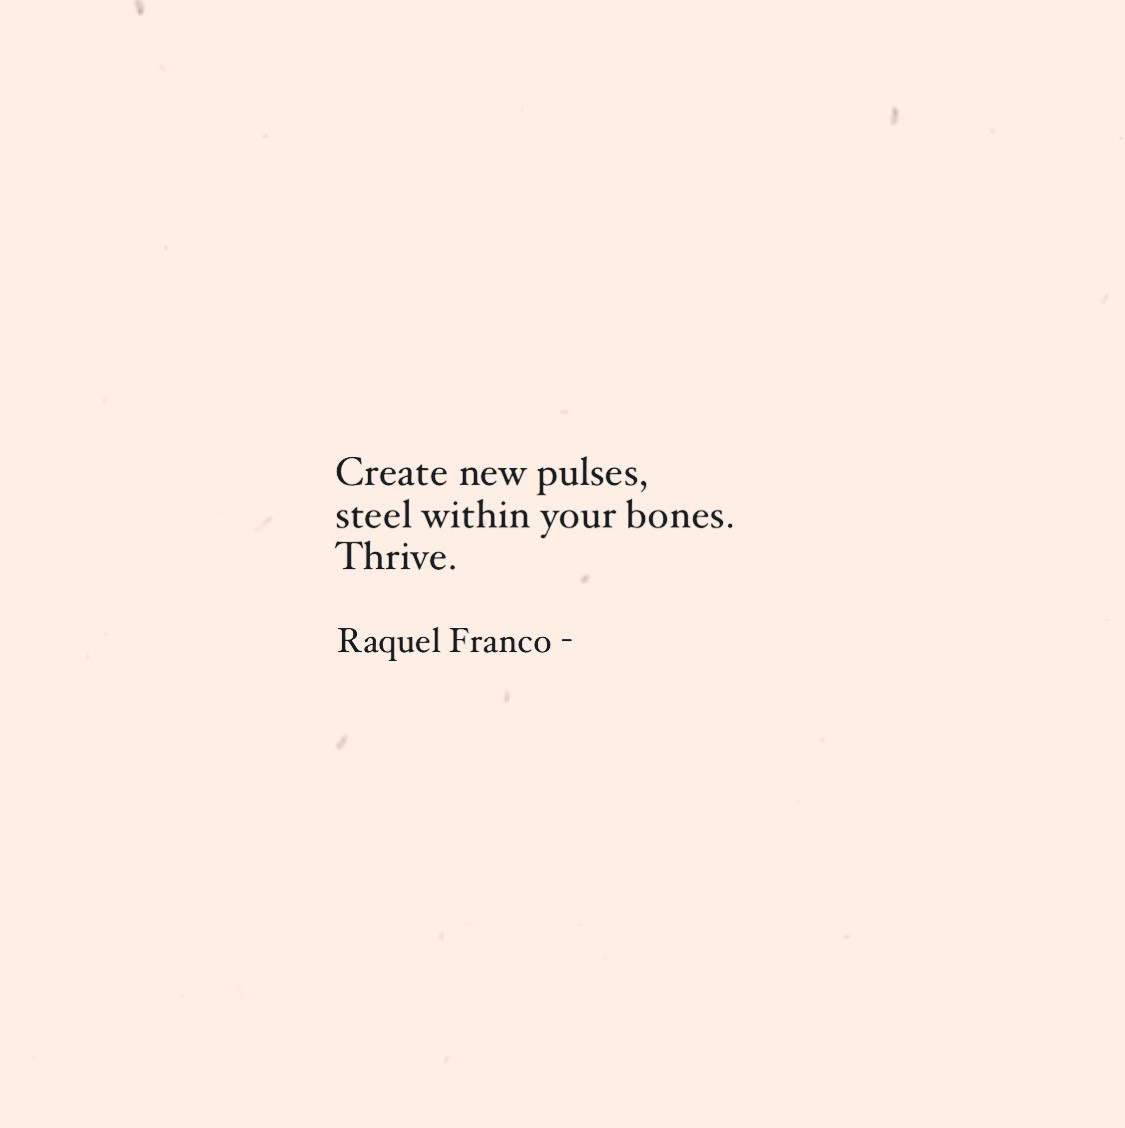 Poem by Raquel Franco